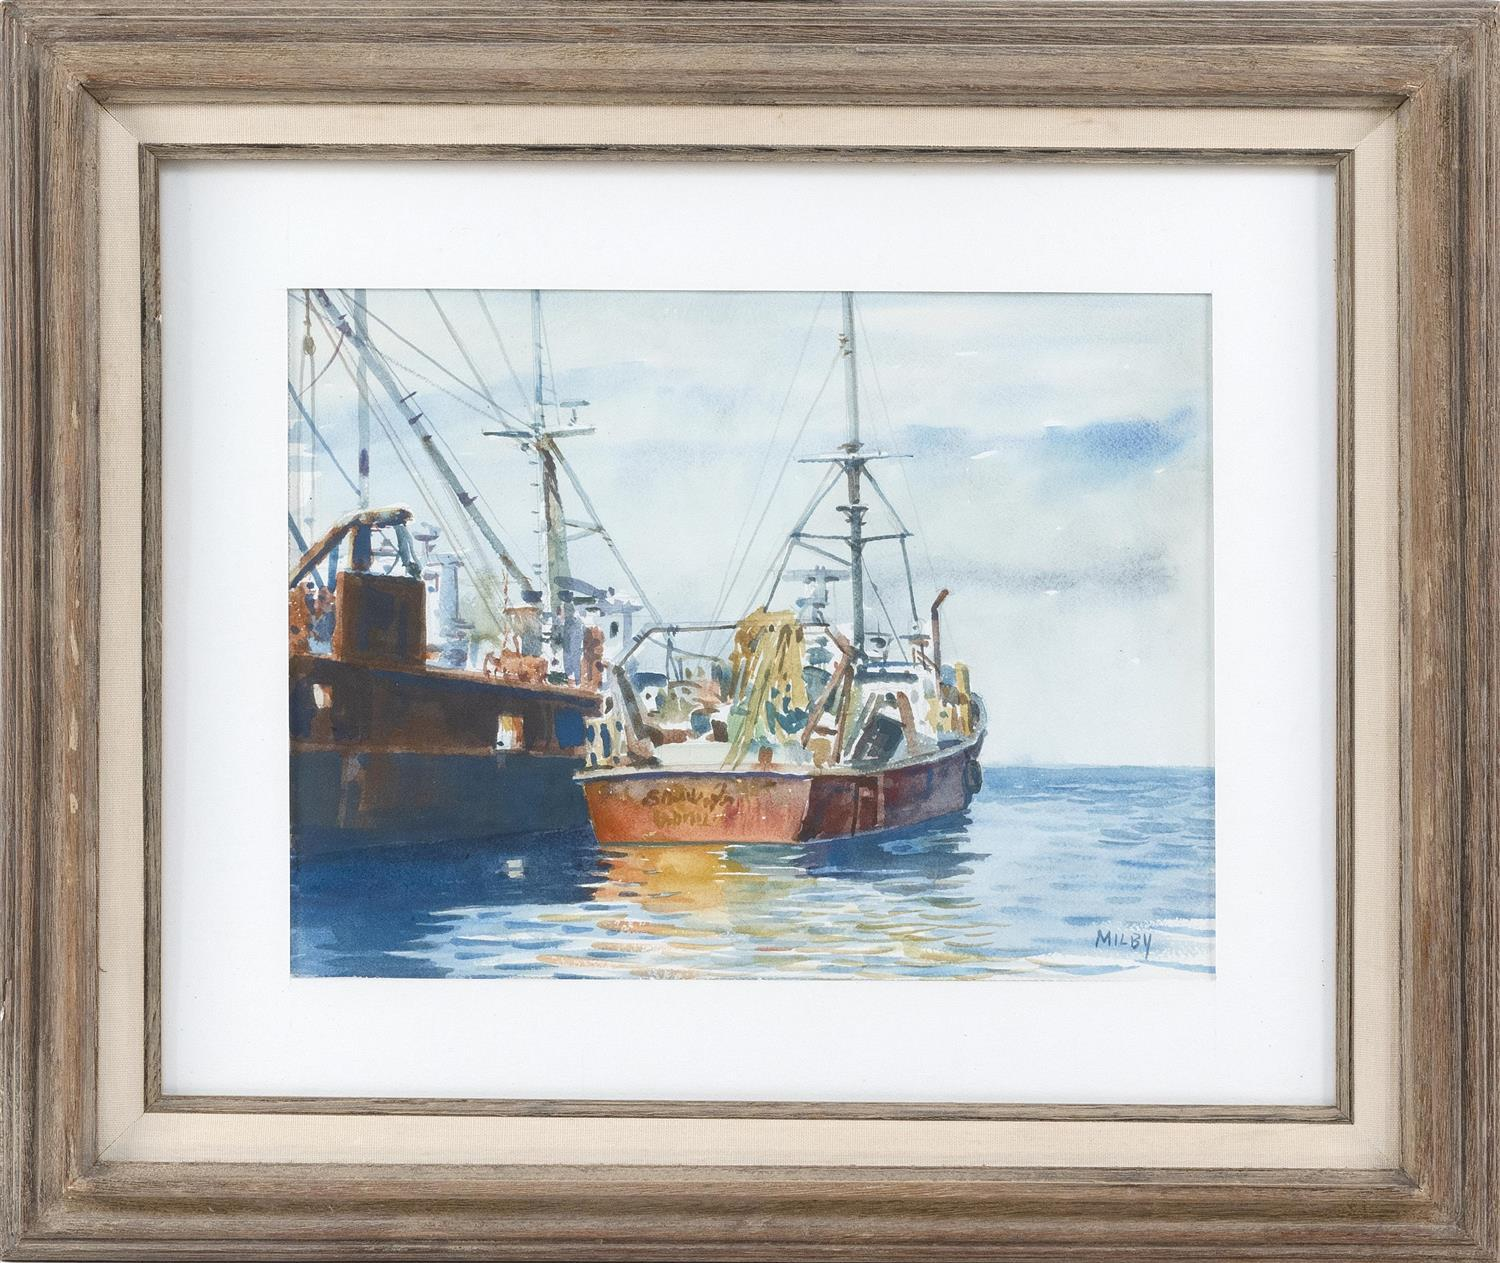 "FRANK MILBY, Massachusetts, b. 1933, Fishing boats in Provincetown Harbor., Watercolor on paper, 16"" x 20"". Framed 22"" x 25""."